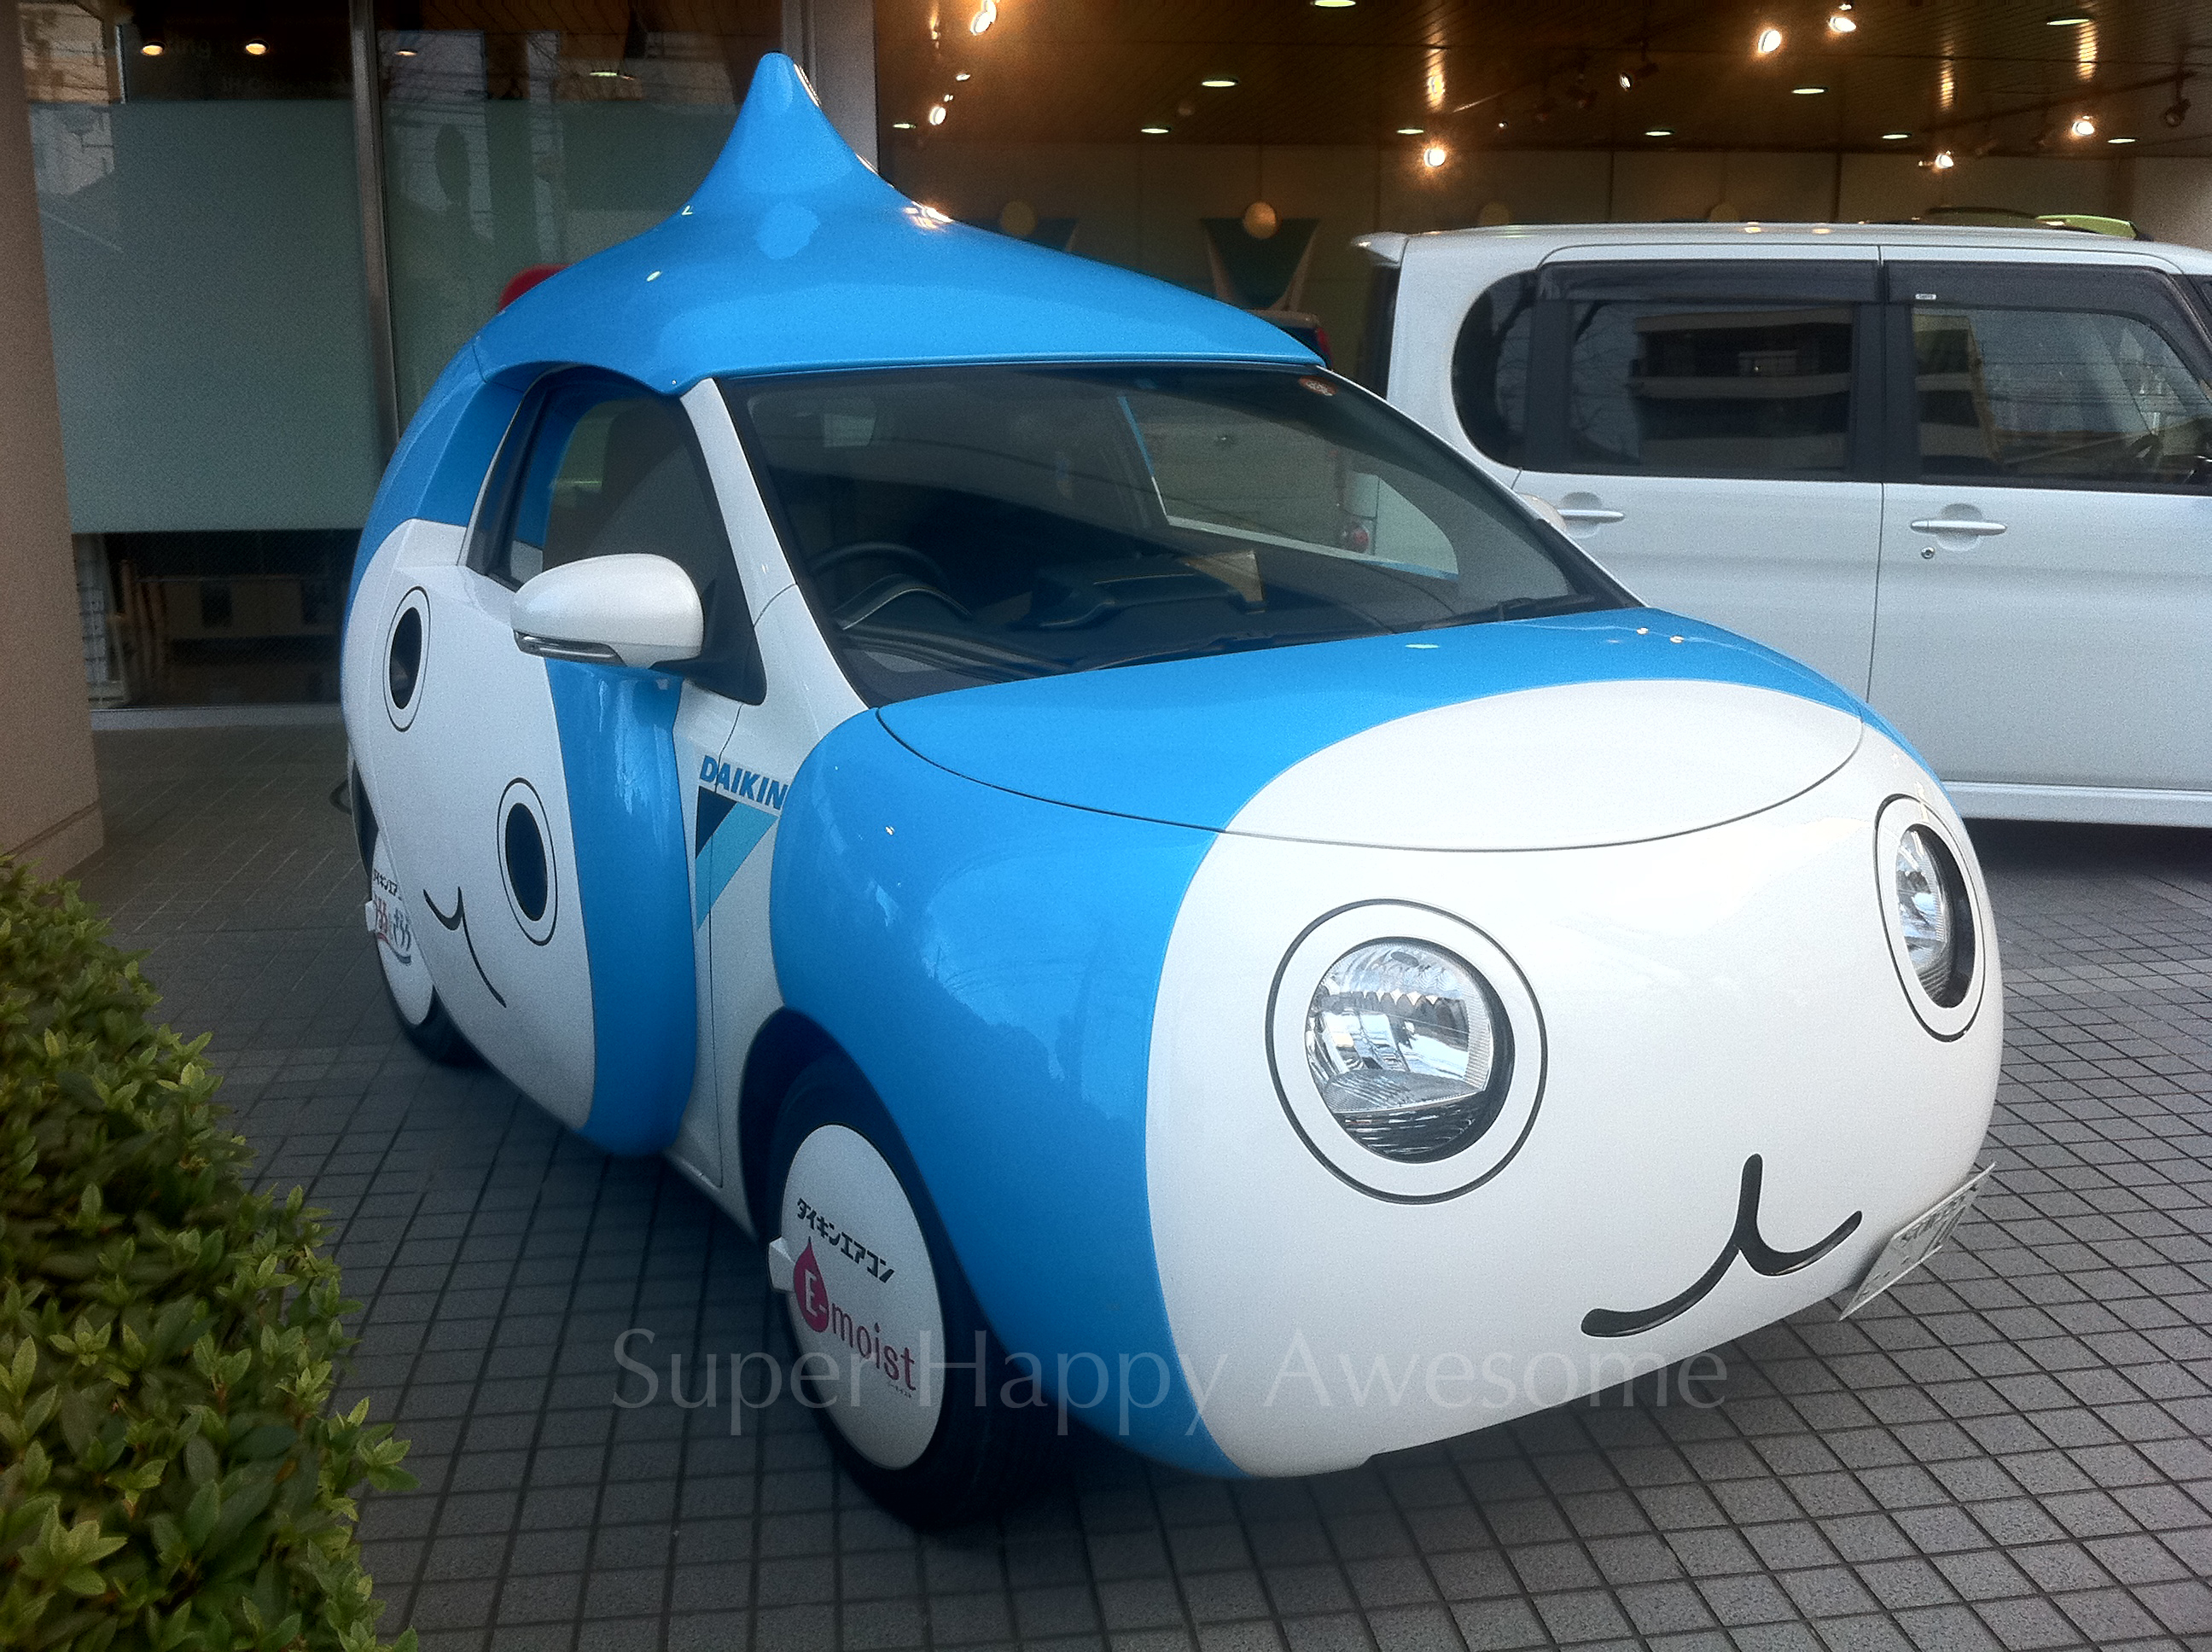 cutest cars cute japanese kawaii pretty ever wrap weird expanse funny copy mascot planet japan company adorable front cuter challenge